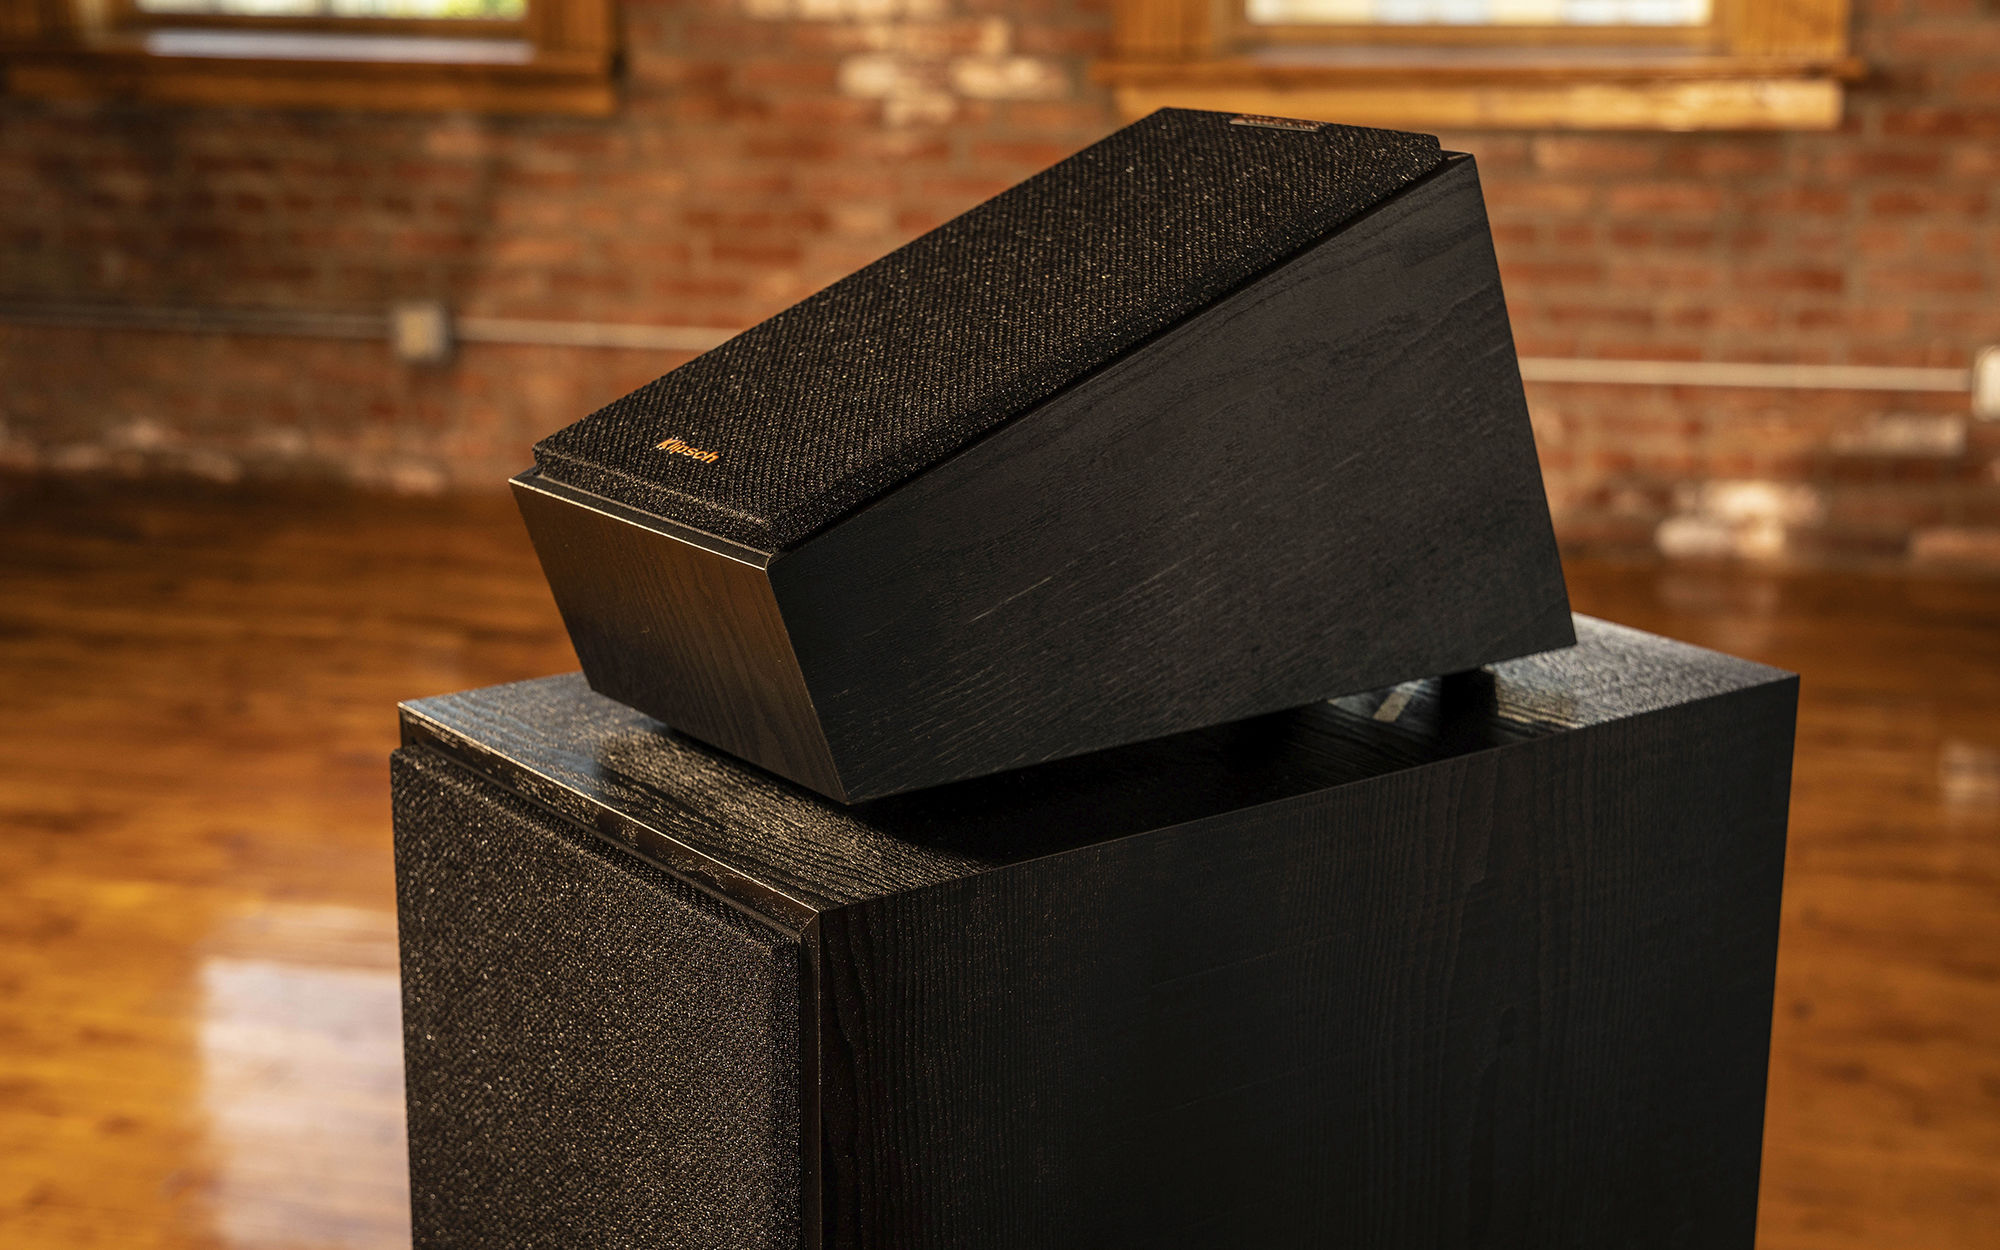 R-41SA Dolby Atmos Elevation/Surround Speaker